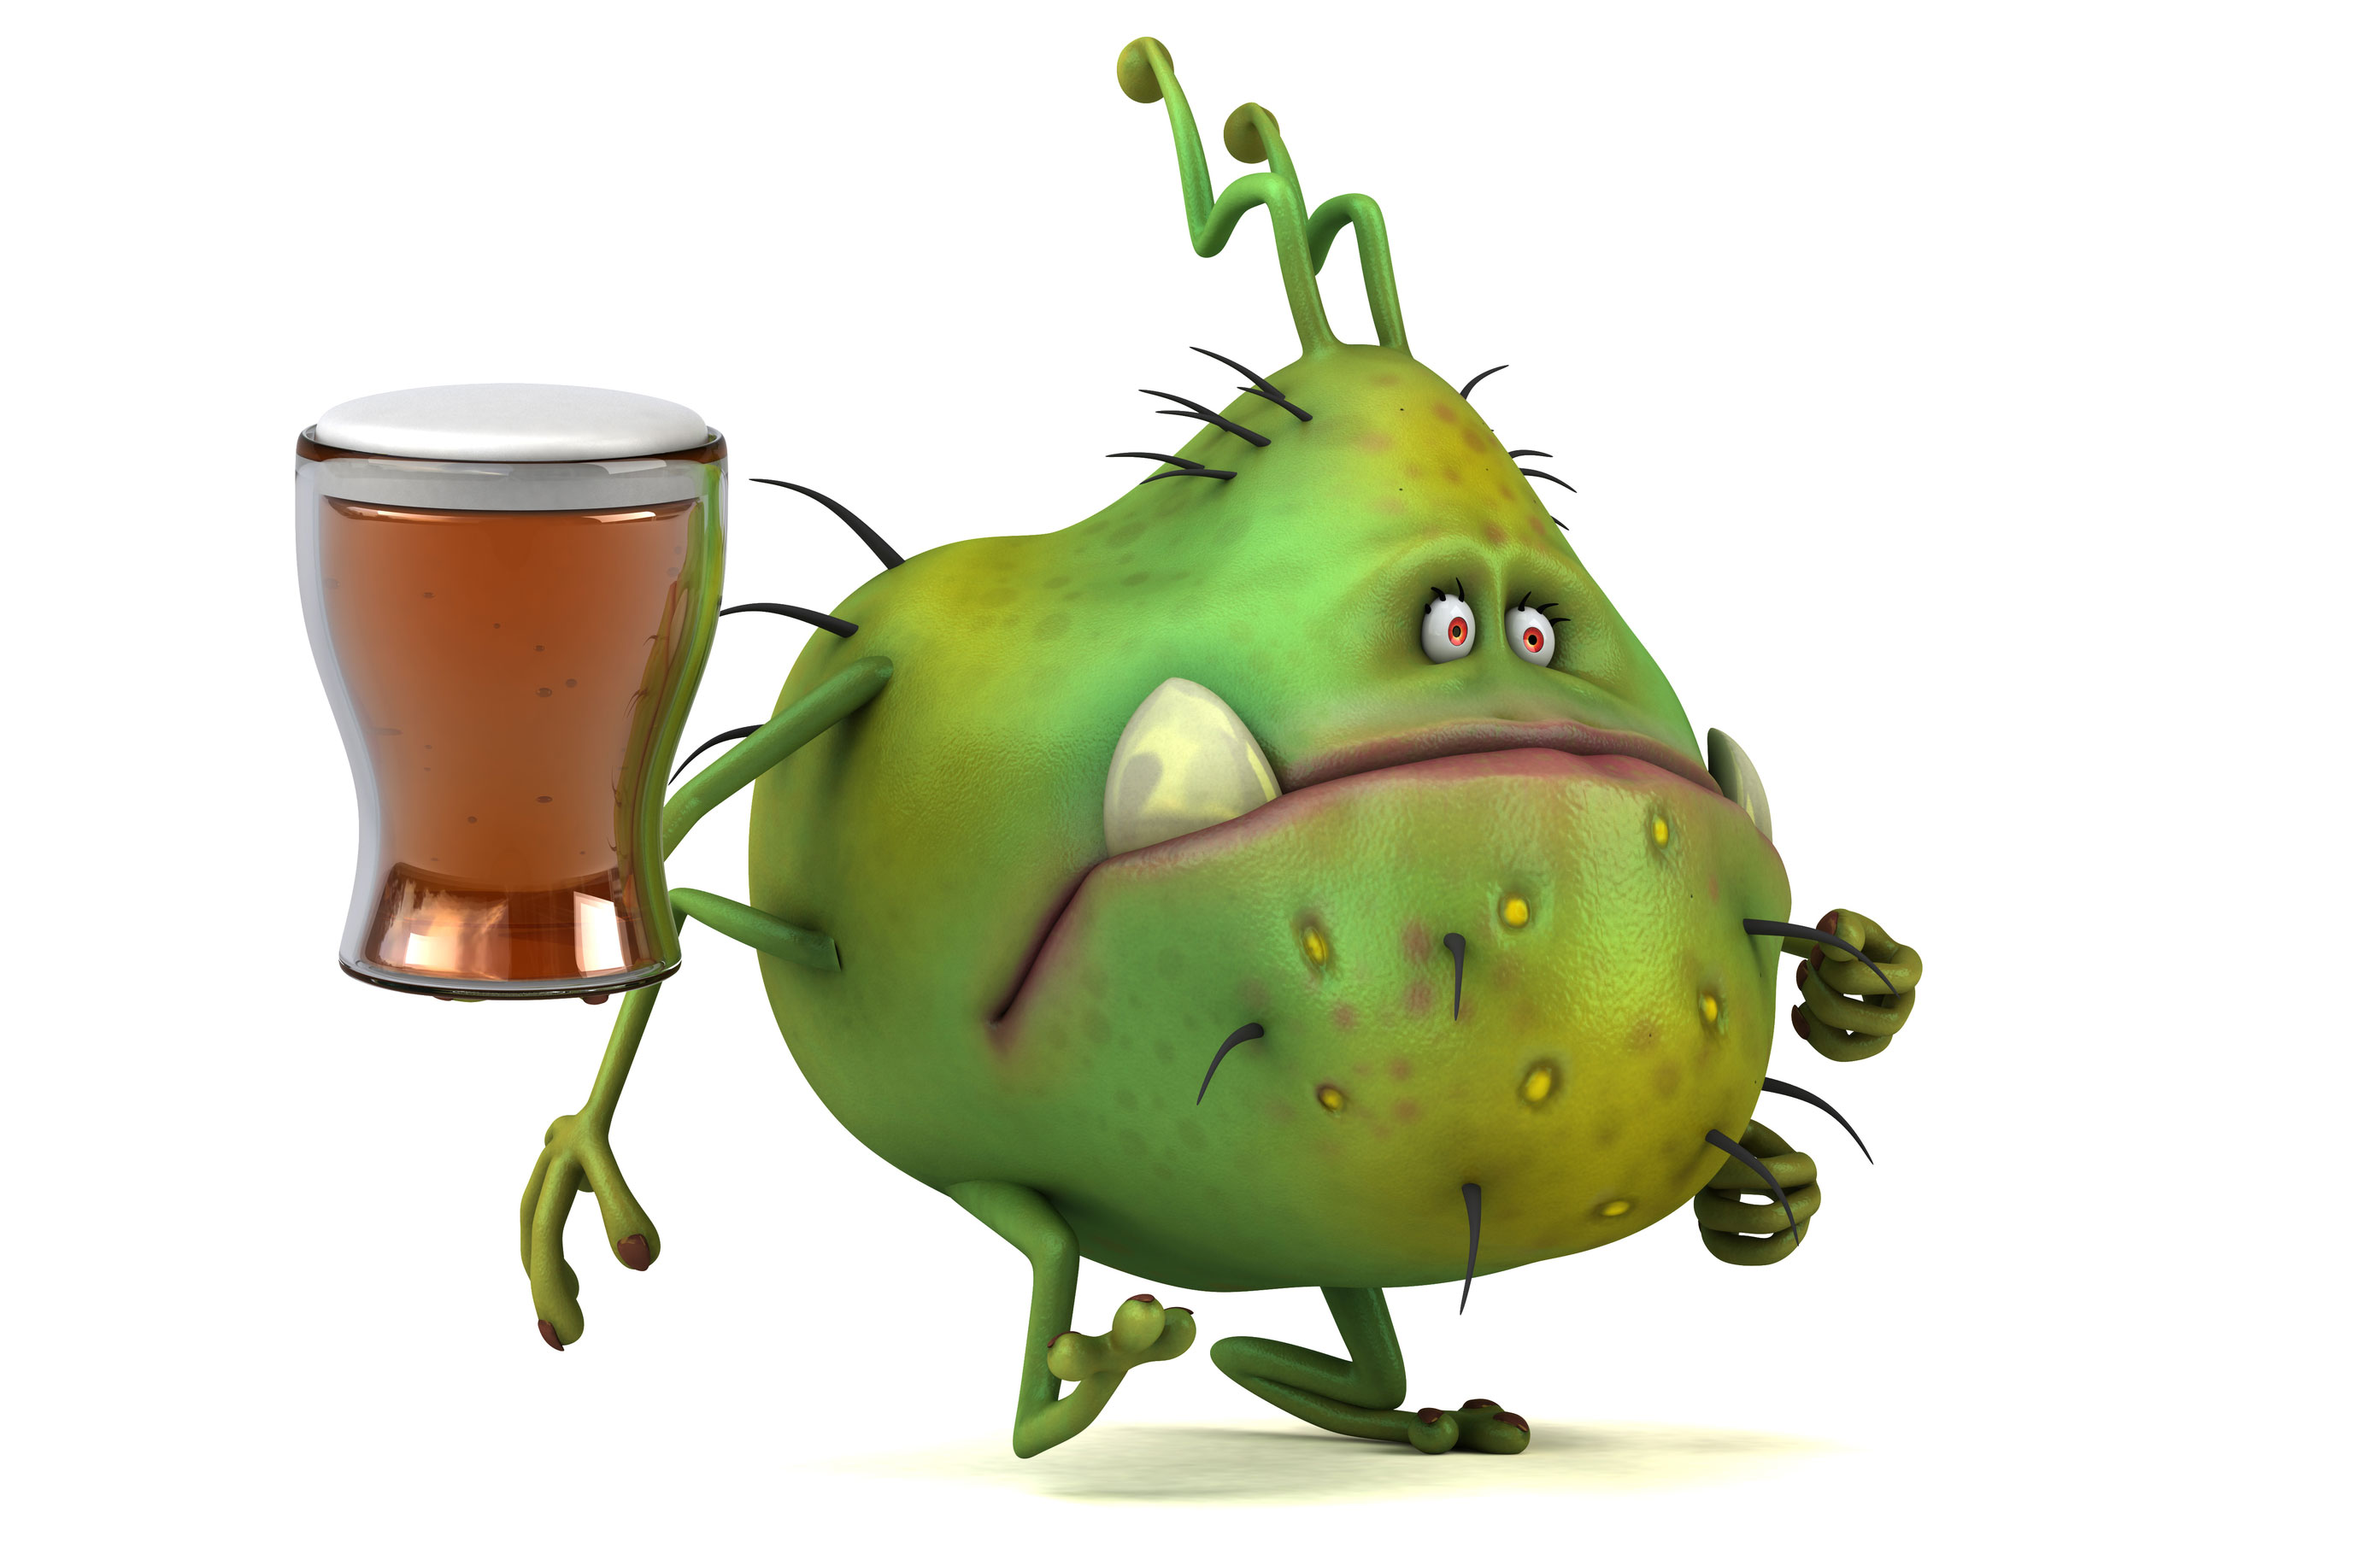 Alcohol-producing gut bacteria can cause liver disease